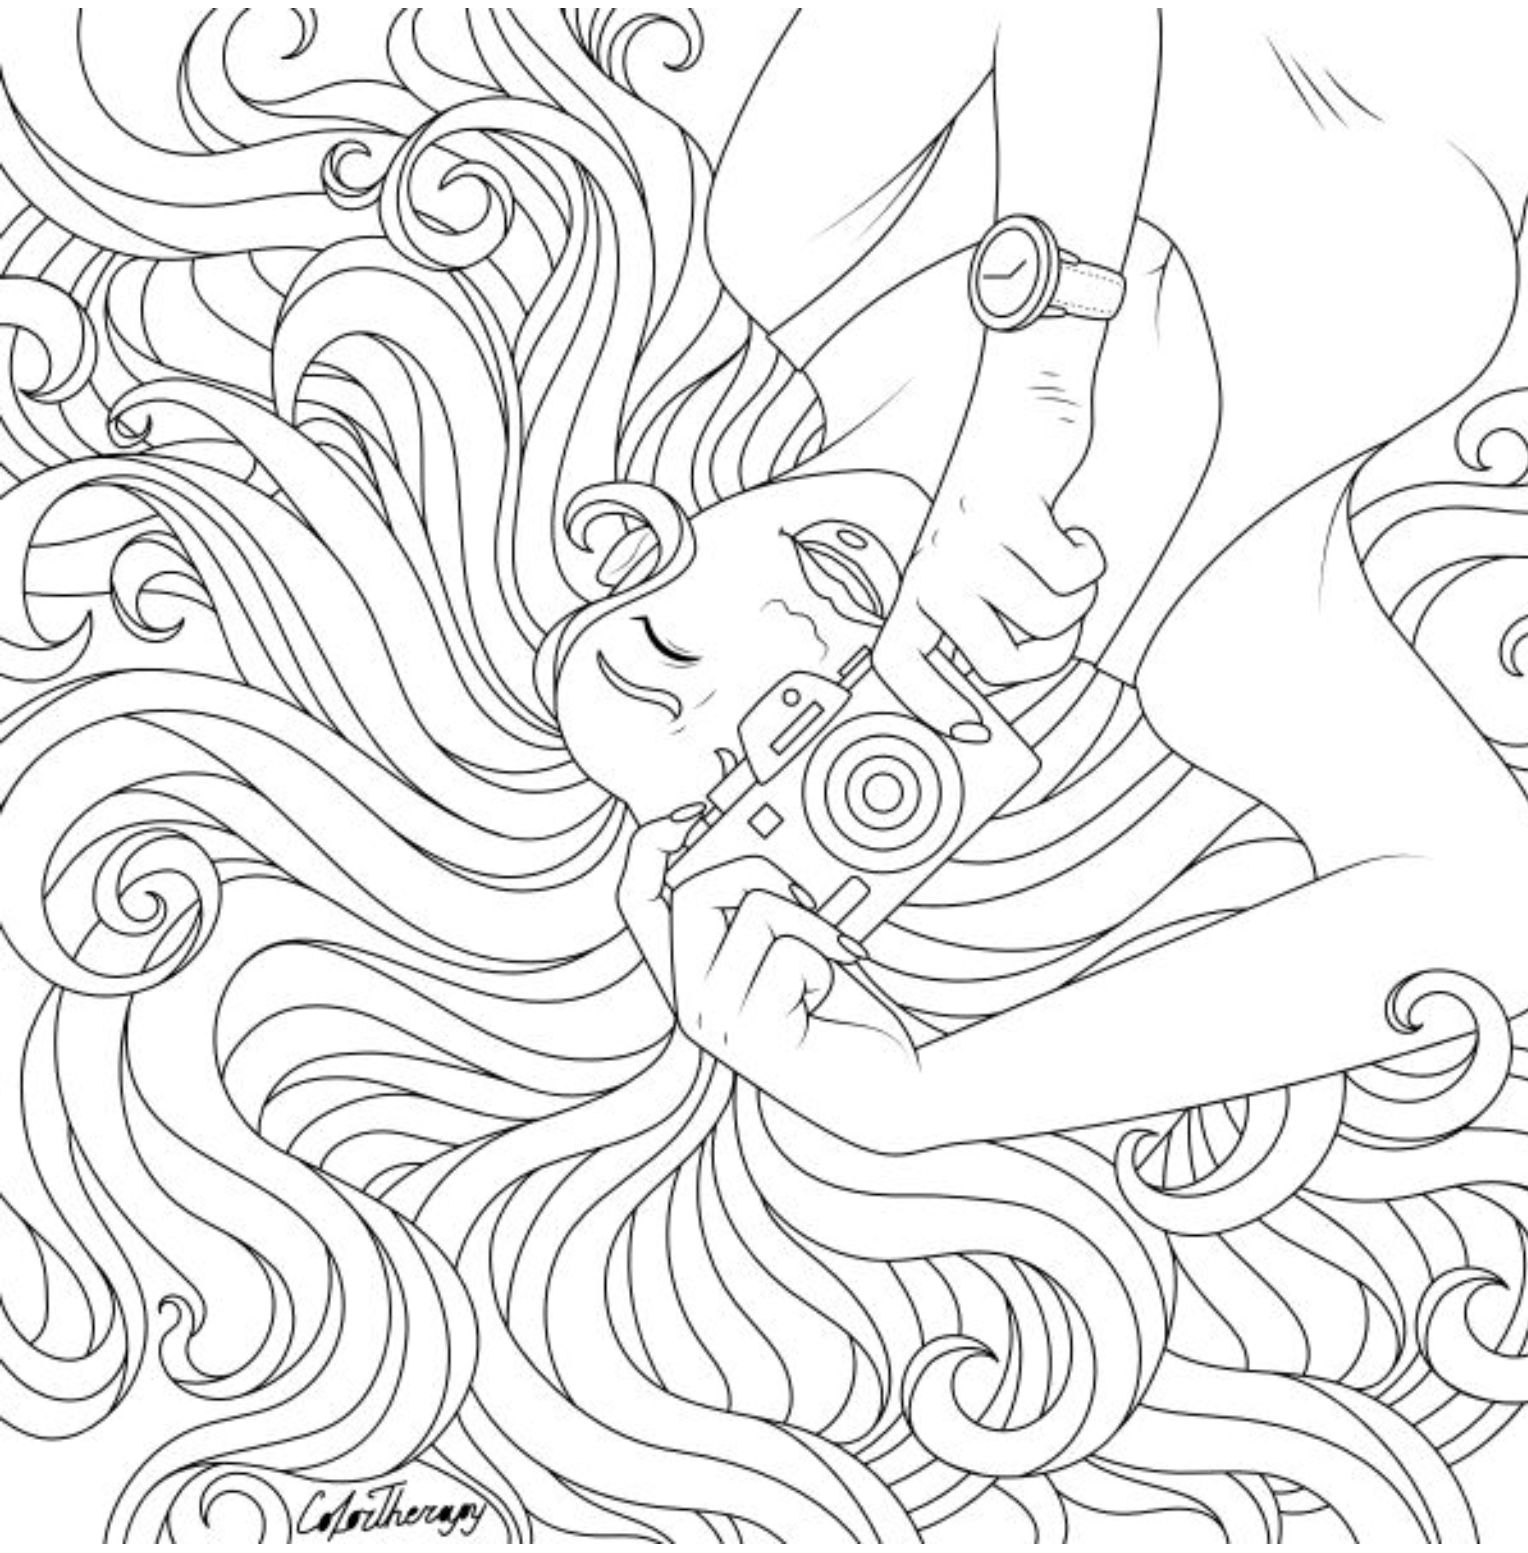 The Sneakpeek For The Next Gift Of The Day Tomorrow Do You Like This One Lady Photographer Free Coloring Pages Coloring Pages People Coloring Pages [ 1553 x 1528 Pixel ]